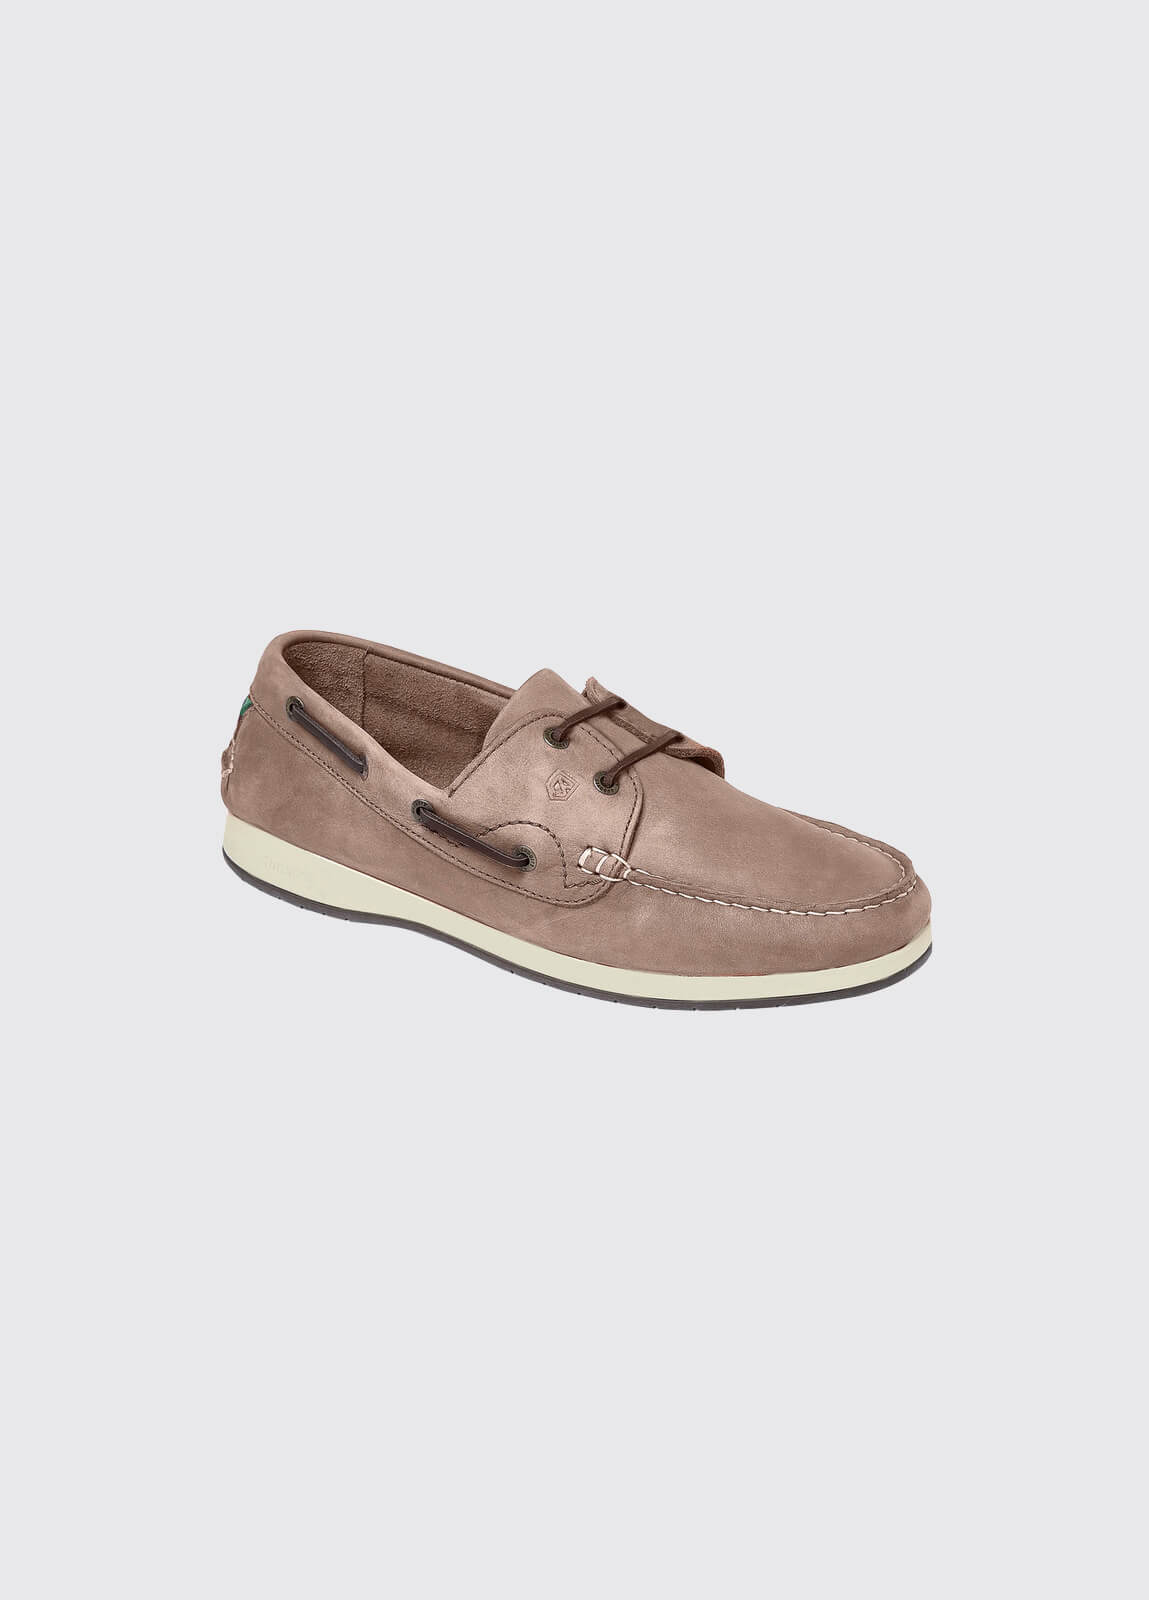 Pacific X LT Deck Shoe - Taupe